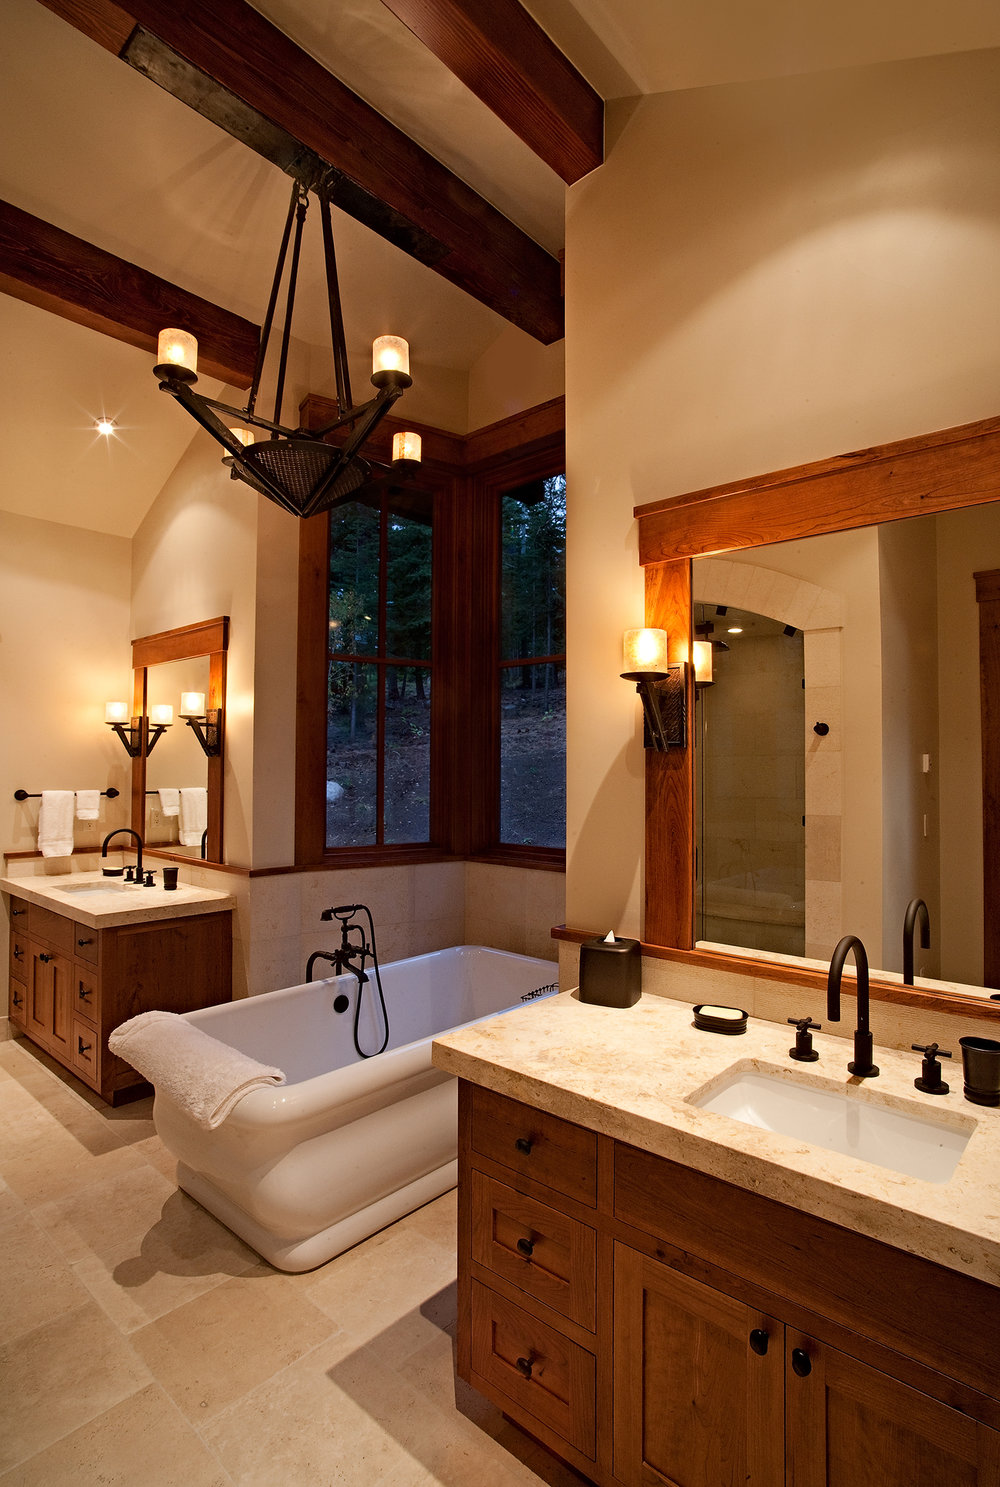 Lot 77_Master Bath_Freestanding Tub_Vanities.jpg